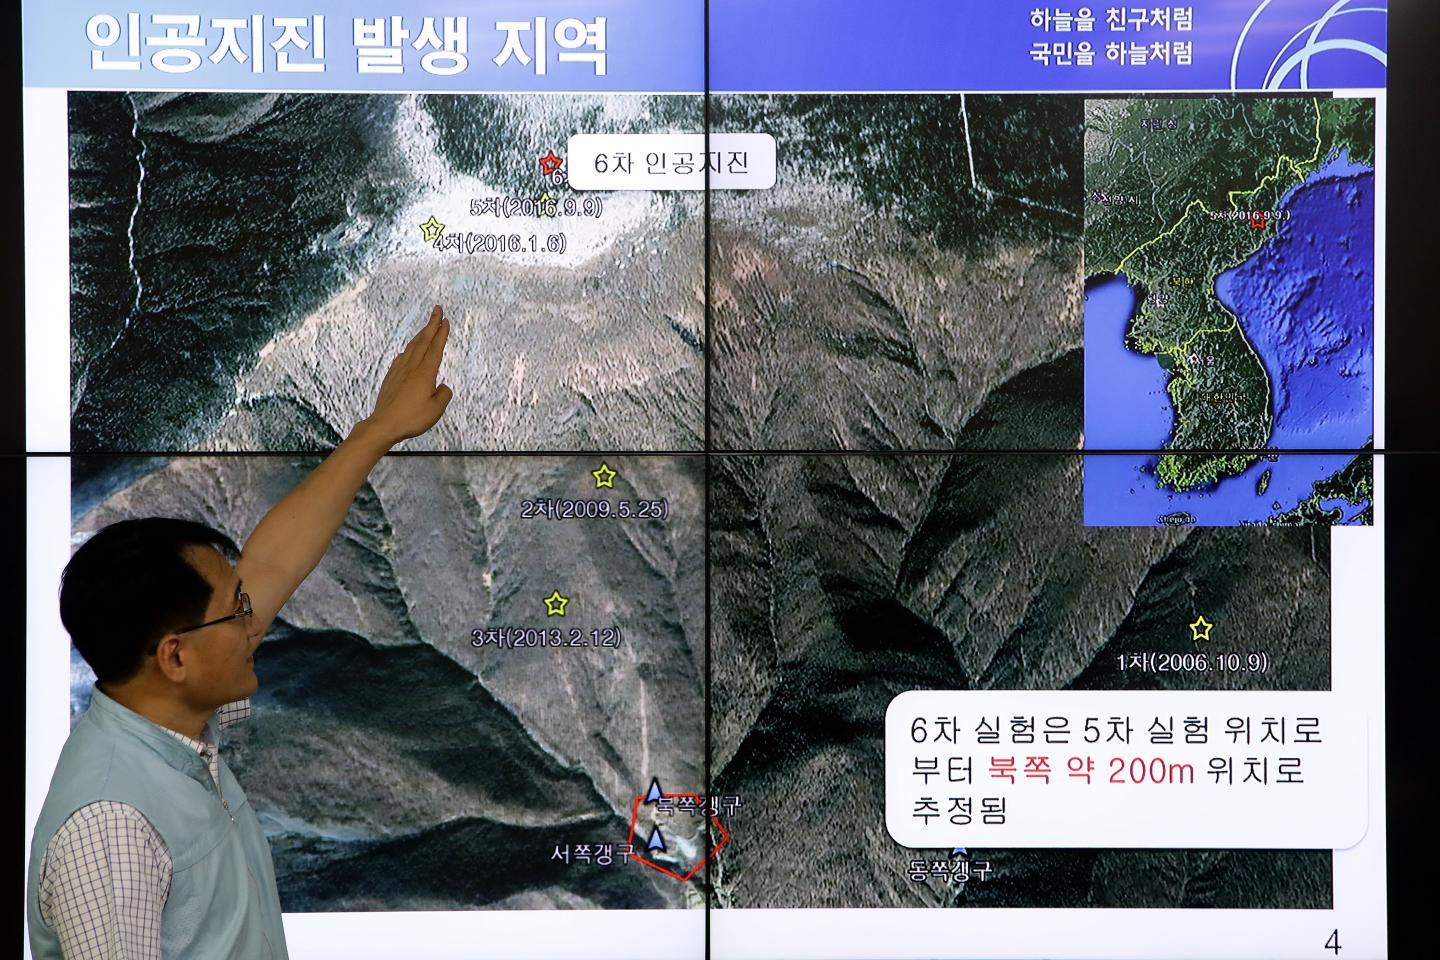 A South Korean scientist shows seismic waves taking place in North Korea on a screen at the Korea Meteorological Administration center on September 3, 2017 in Seoul. More than 200 people are believed to have died in underground tunnels after a collapse at North Korea's Punggye-ri nuclear facility. (CHUNG SUNG-JUN/GETTY IMAGES)